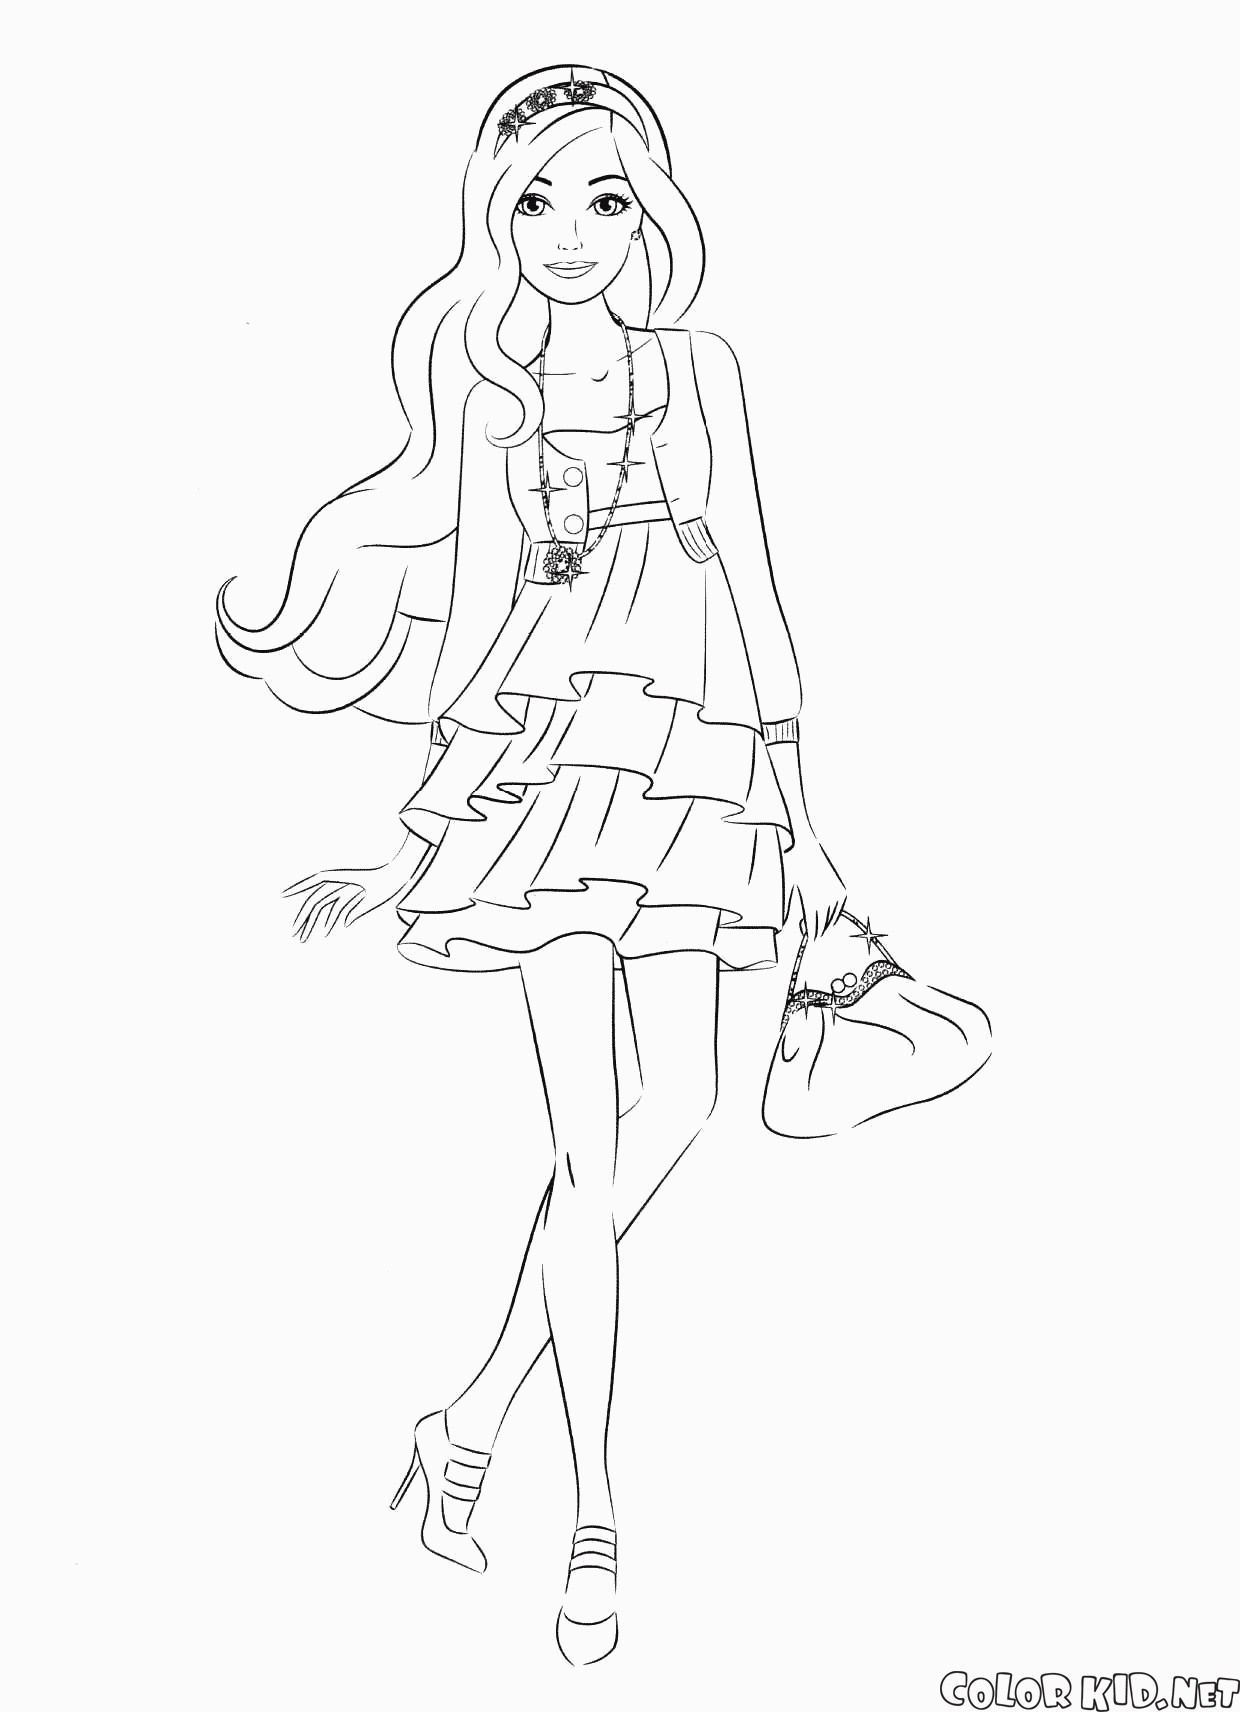 42 Barbie Dress Up Coloring Pages Top Doll Dress Games From Barbie Dresses Coloring Pages Barbie Drawing Barbie C In 2021 Barbie Coloring Barbie Drawing Coloring Pages